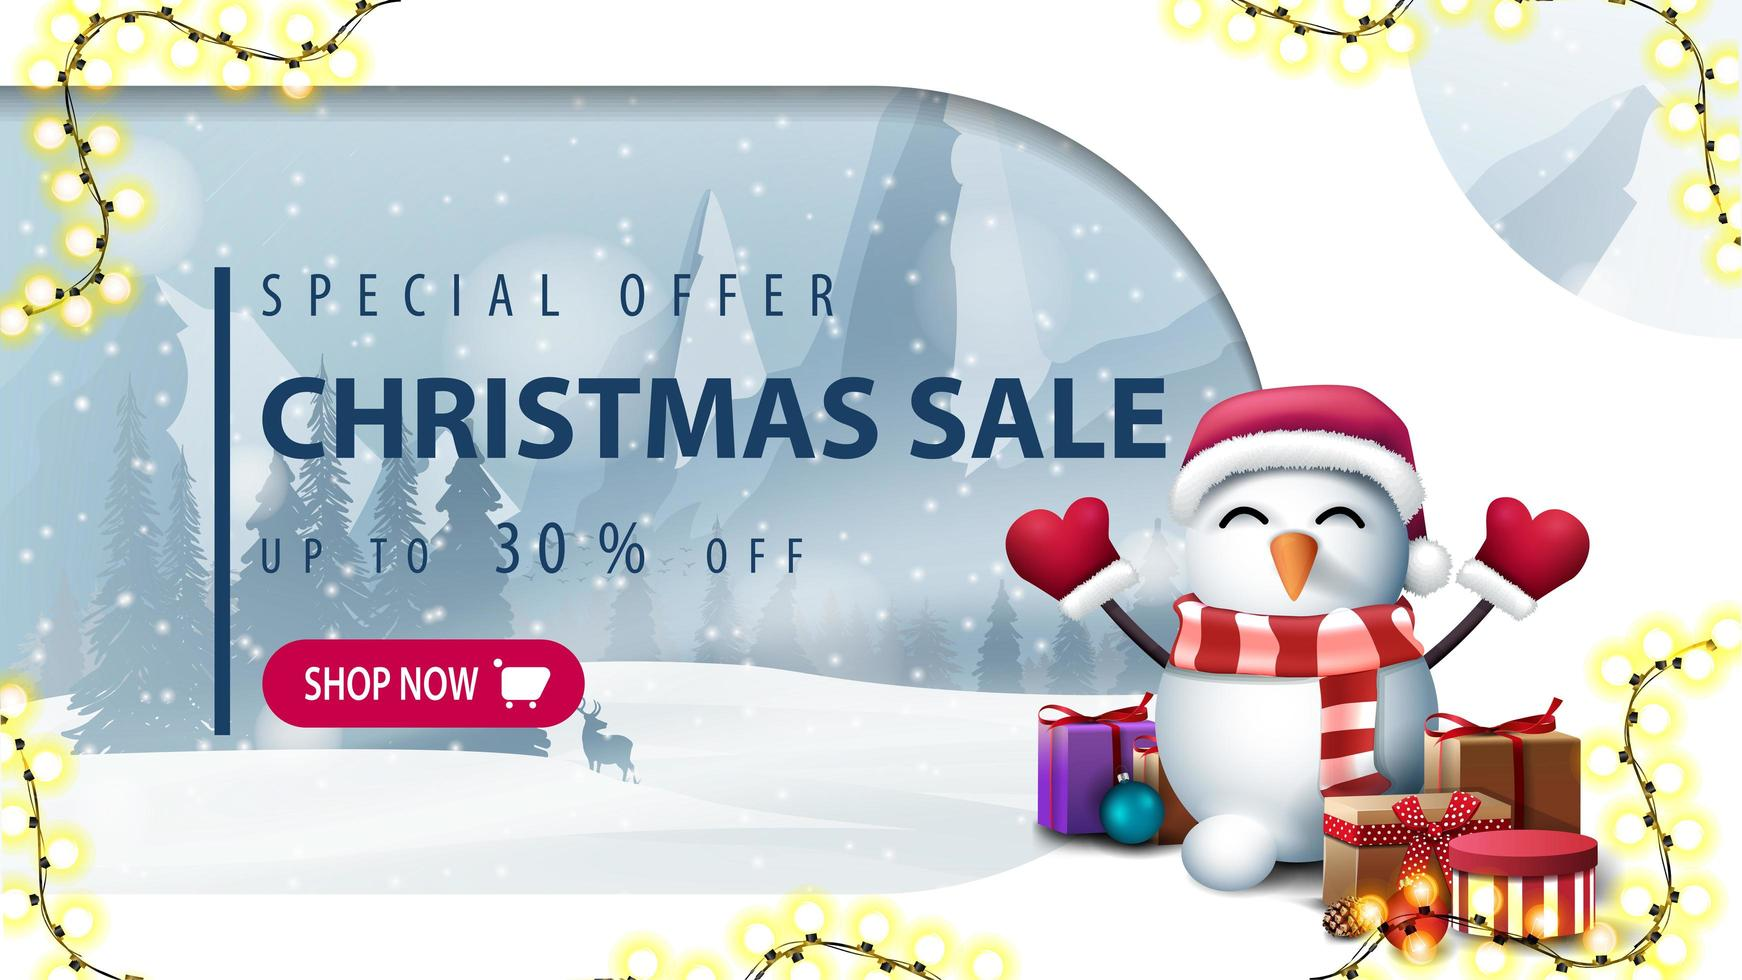 Discount banner in paper cut style with snowman vector